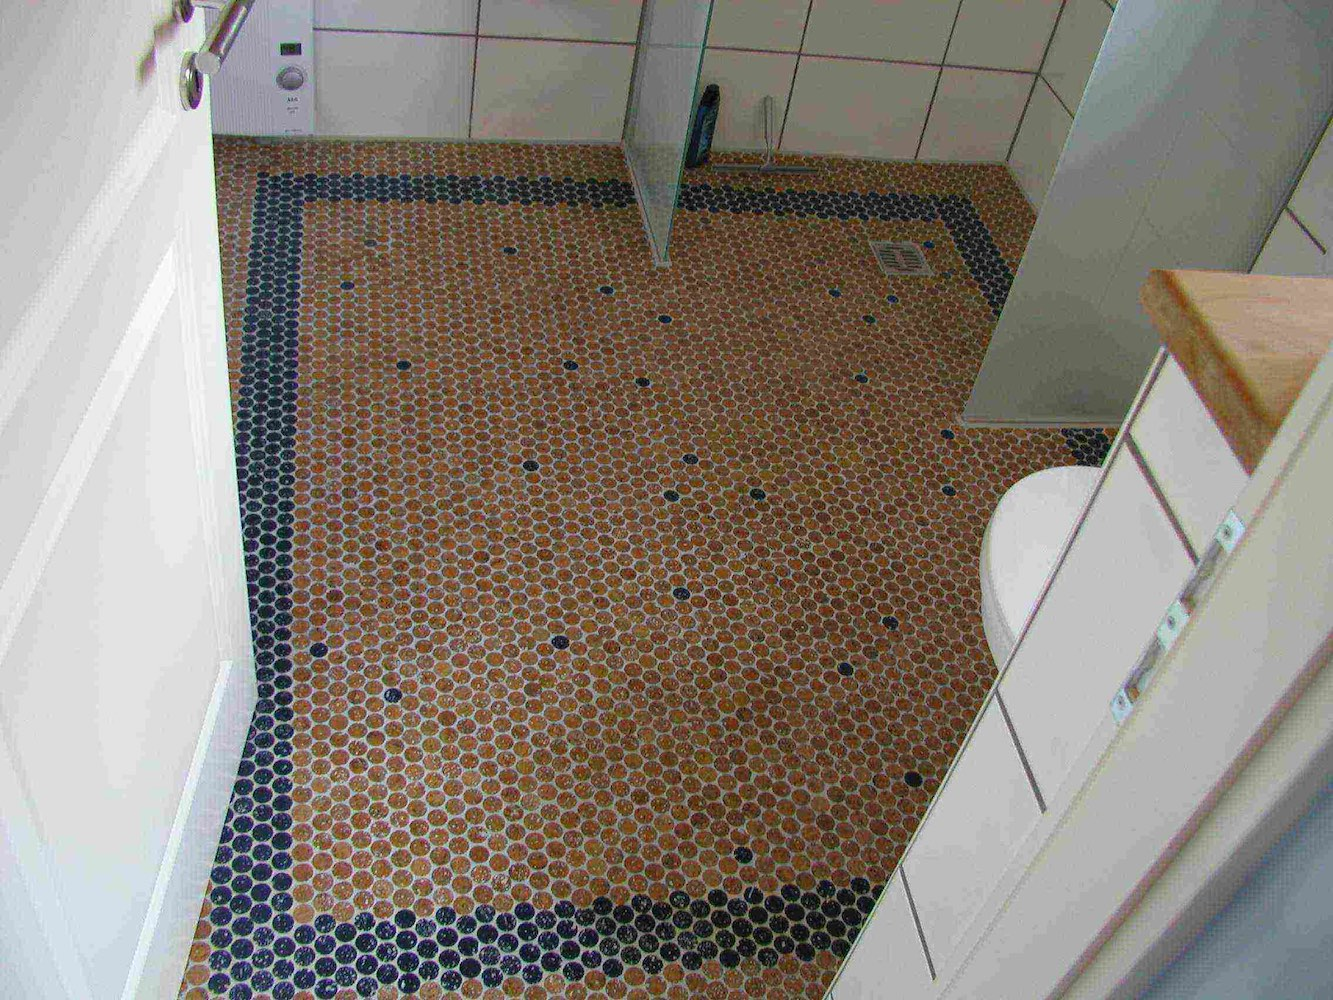 versacork-mosaic-unfinished-Showercork bathroom - blue border